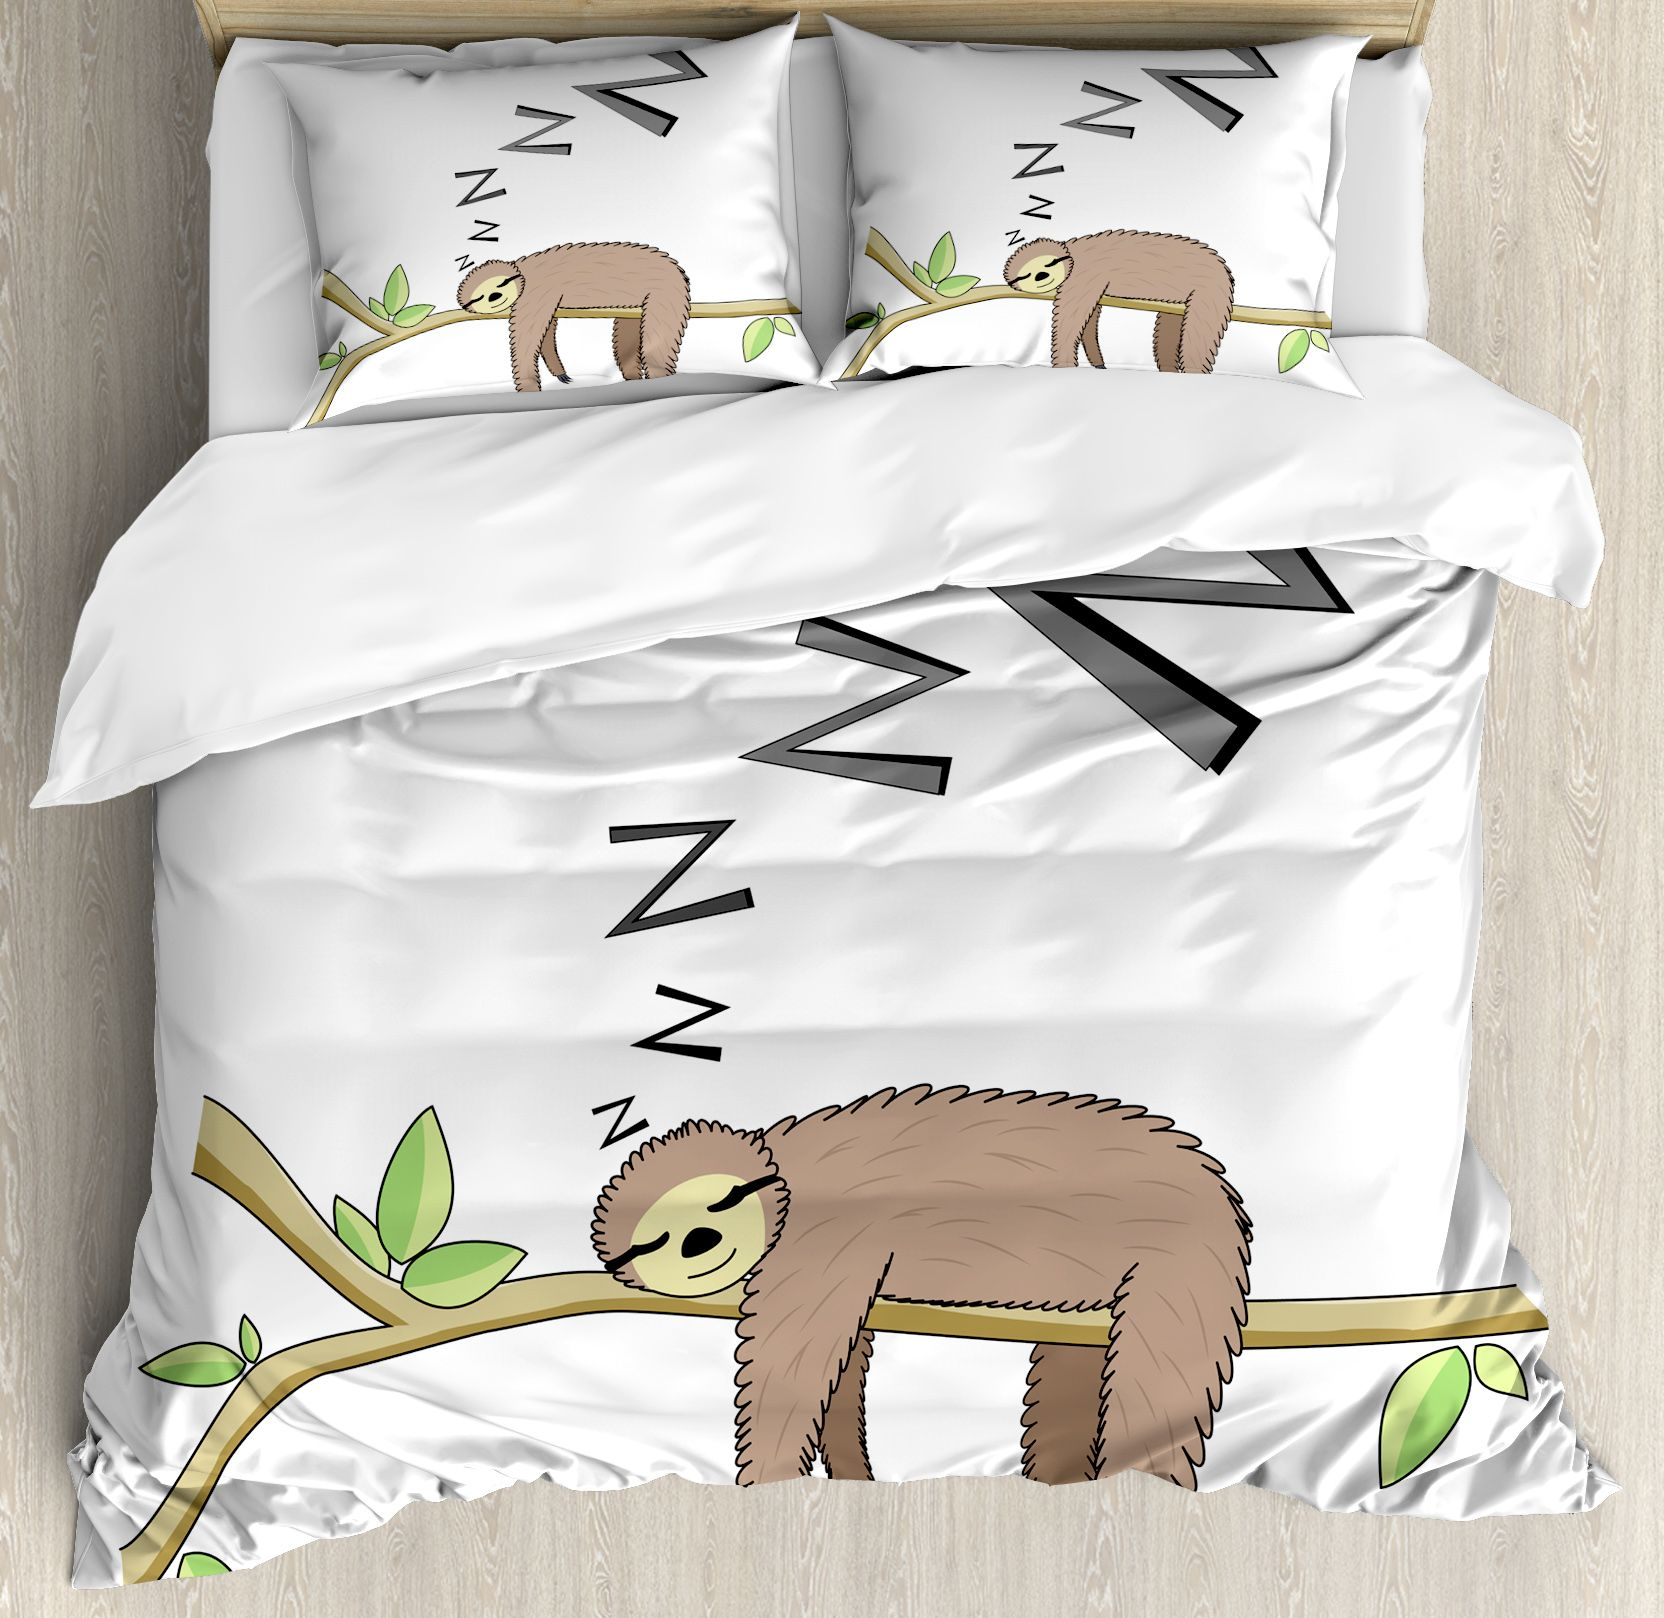 Sloth Queen Size Duvet Cover Set Arboreal Mammal Sleeping On